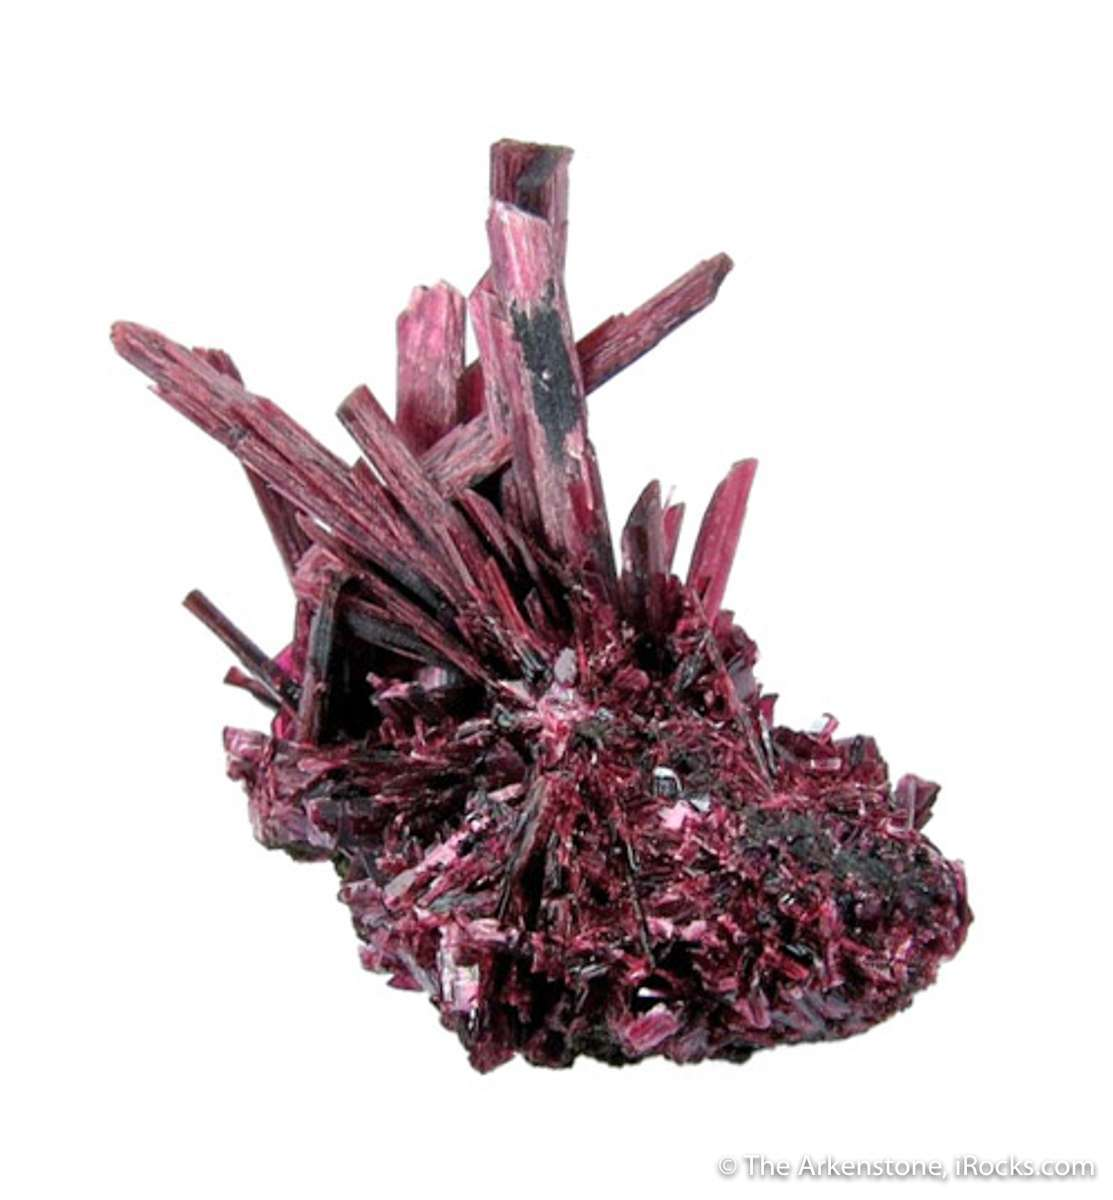 The best Erythrites come Aghbar Mine historically good finds far This